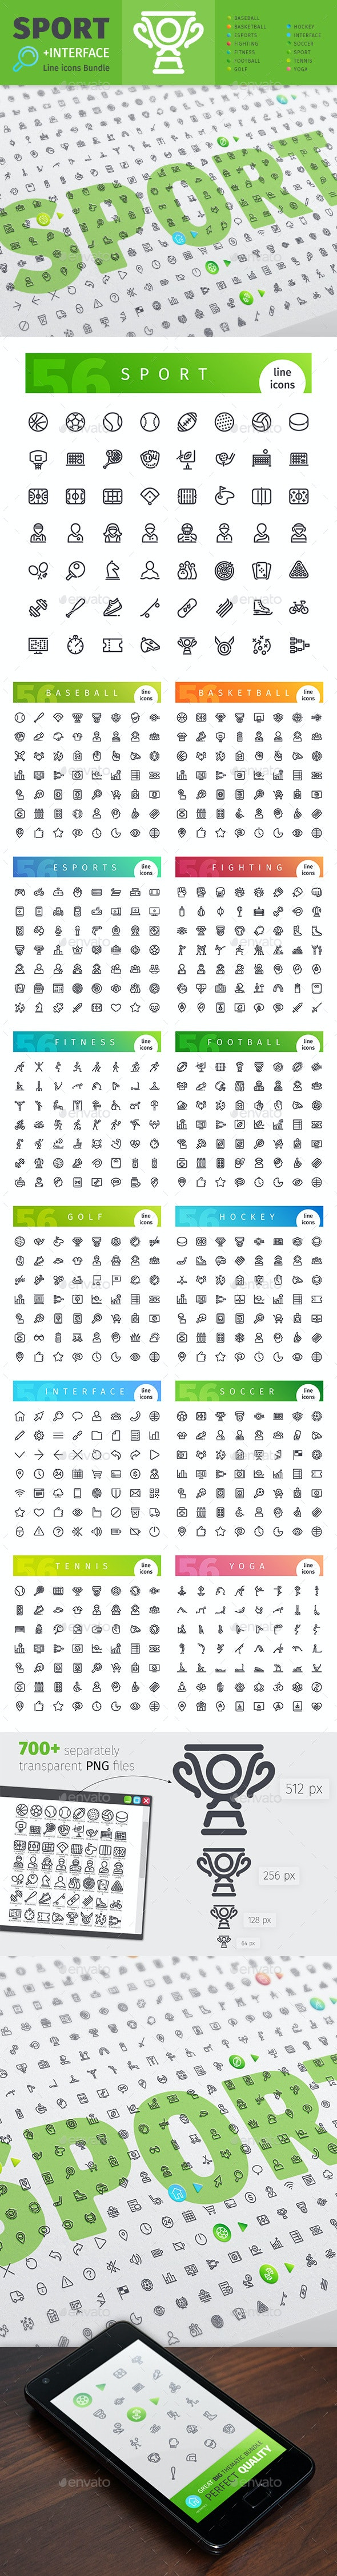 Sport Thematic Collection of Line Icons - Miscellaneous Icons